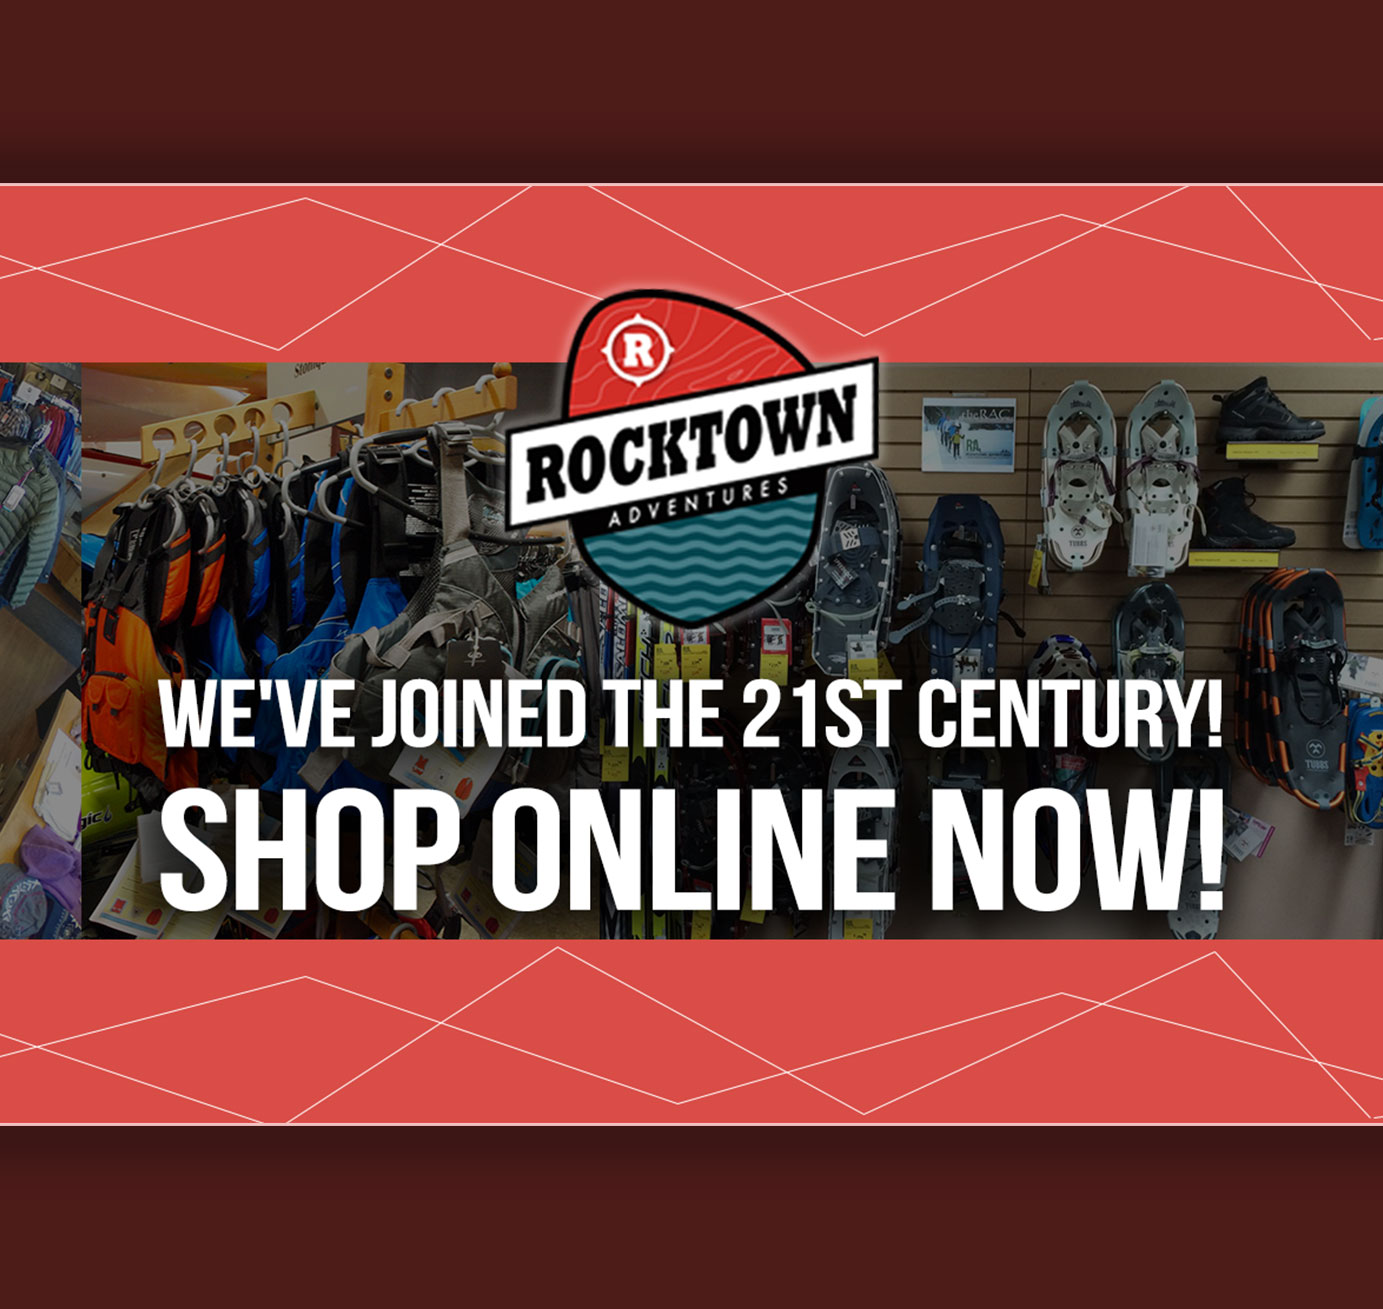 Rocktown Adventures | Shop Online Now!